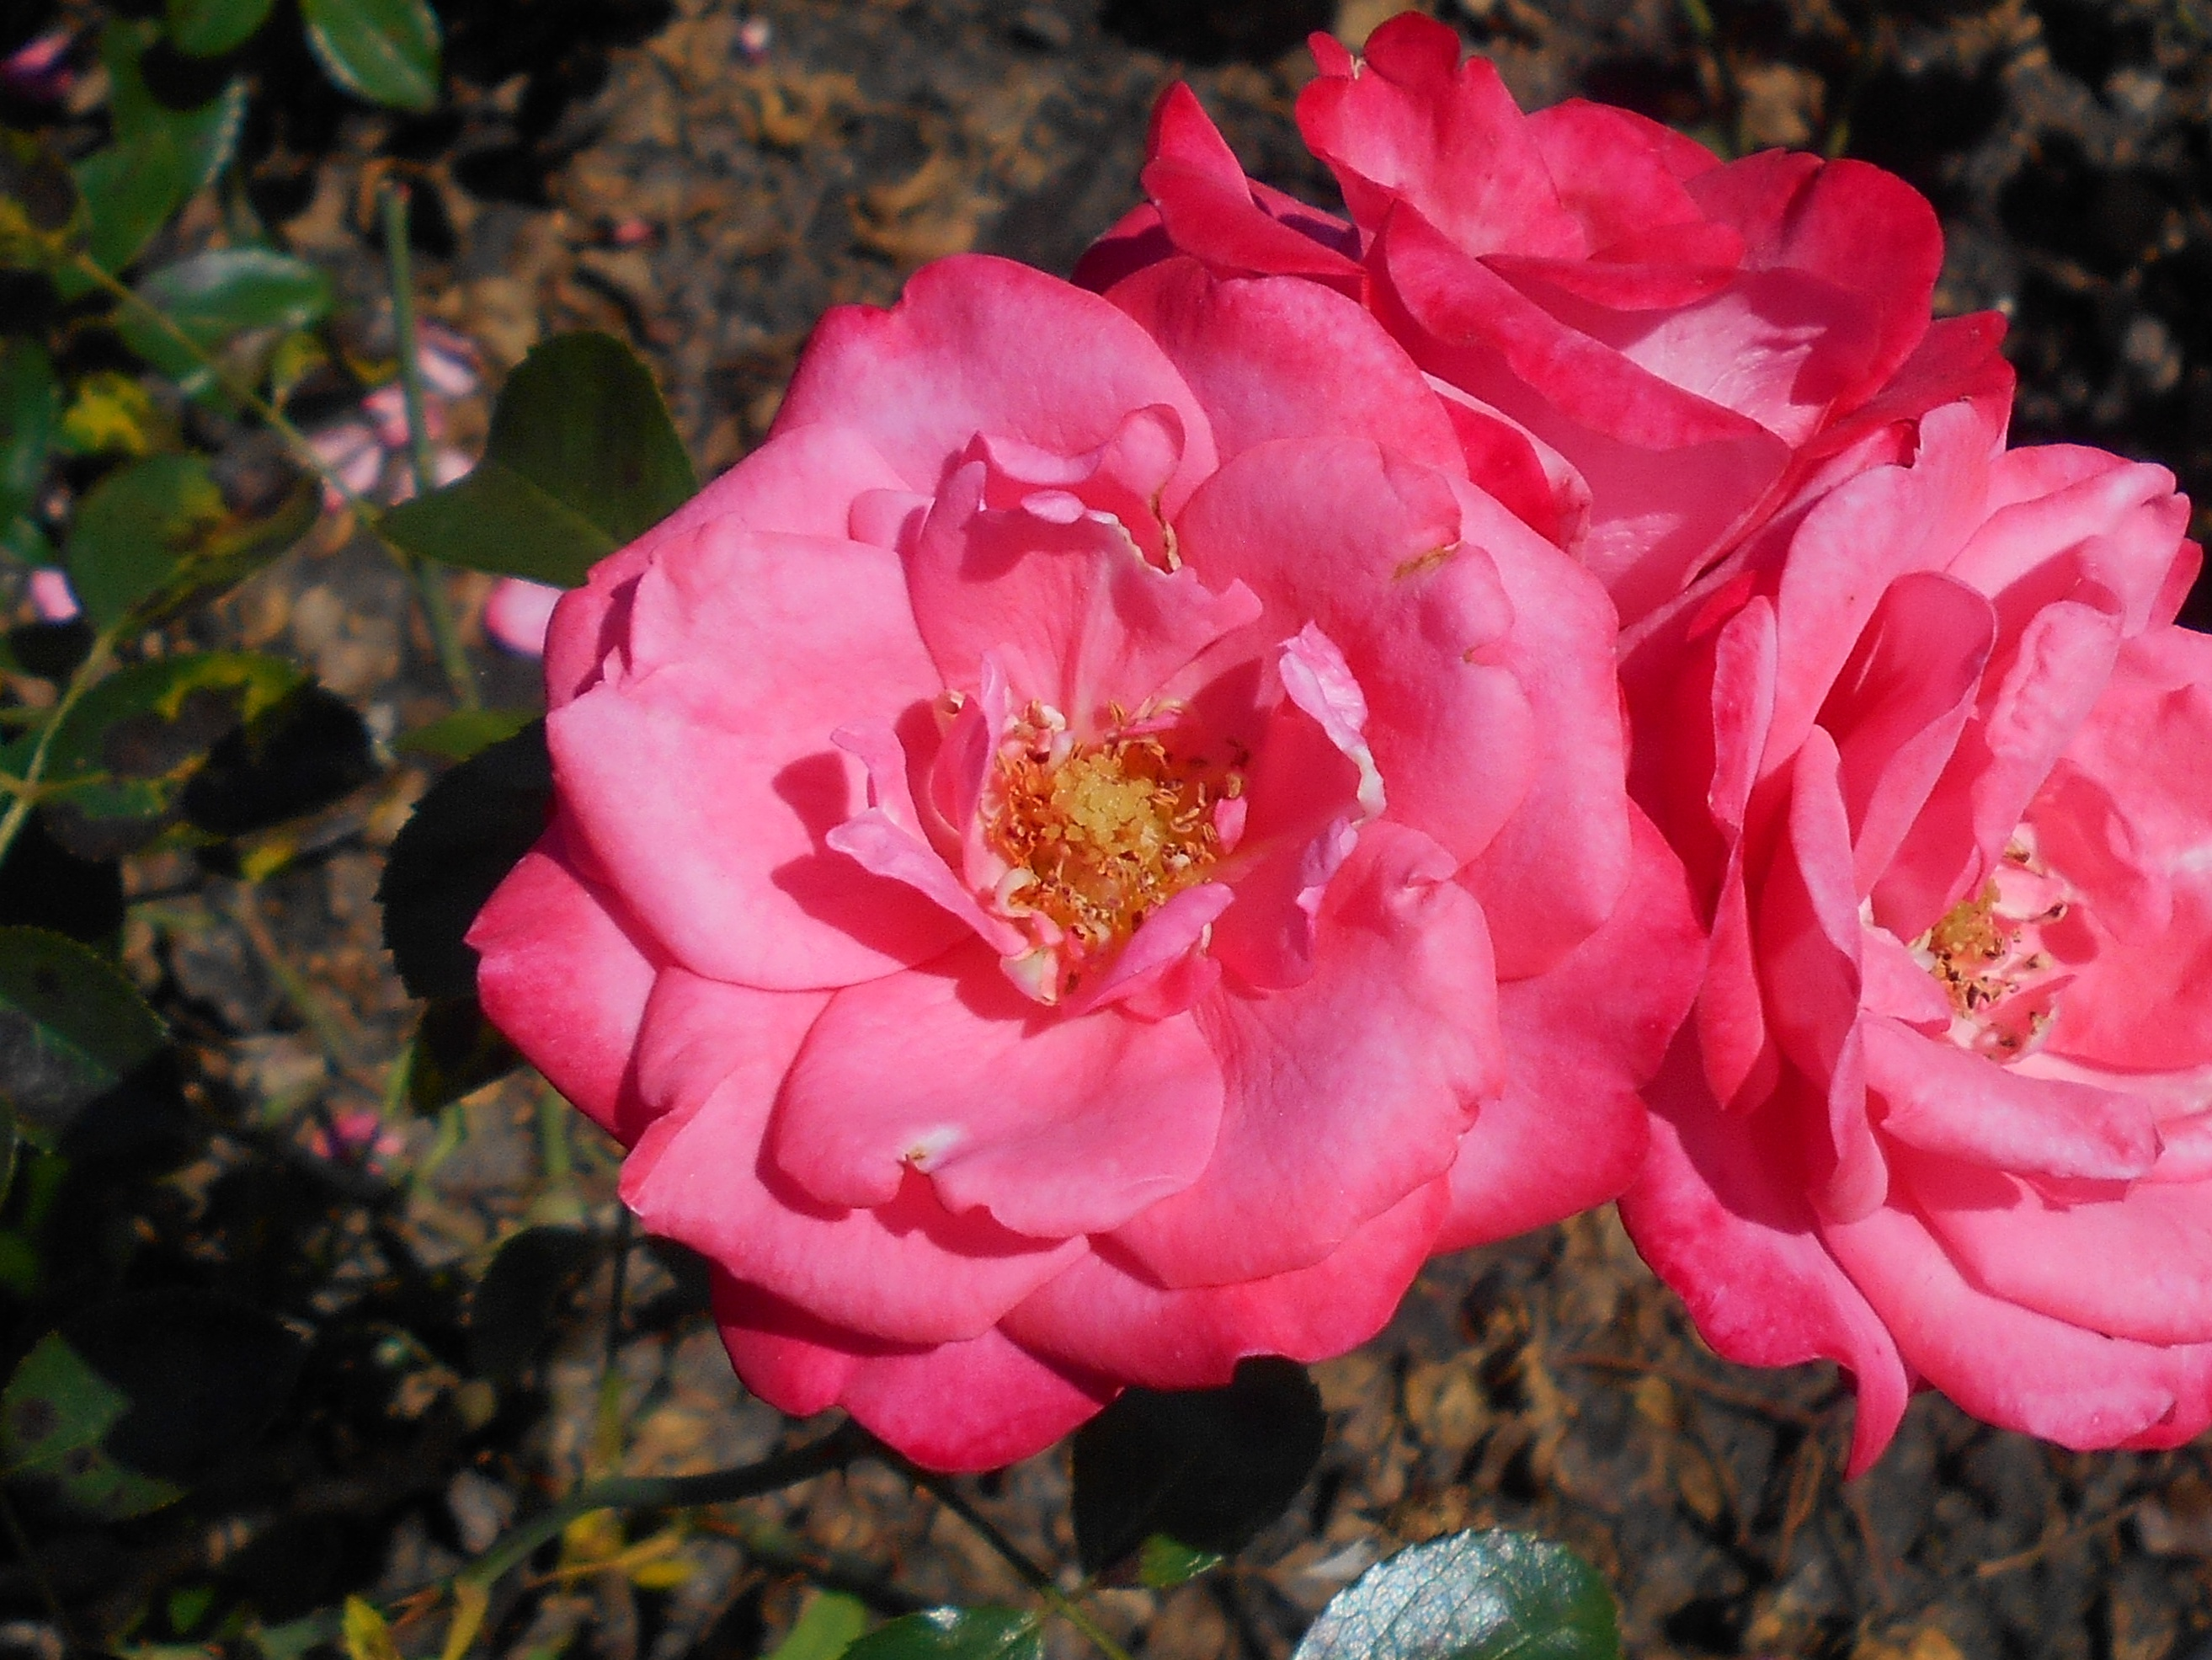 Bella Rosa File Rosa Bella Rosa 2018 07 16 6416 Jpg Wikimedia Commons